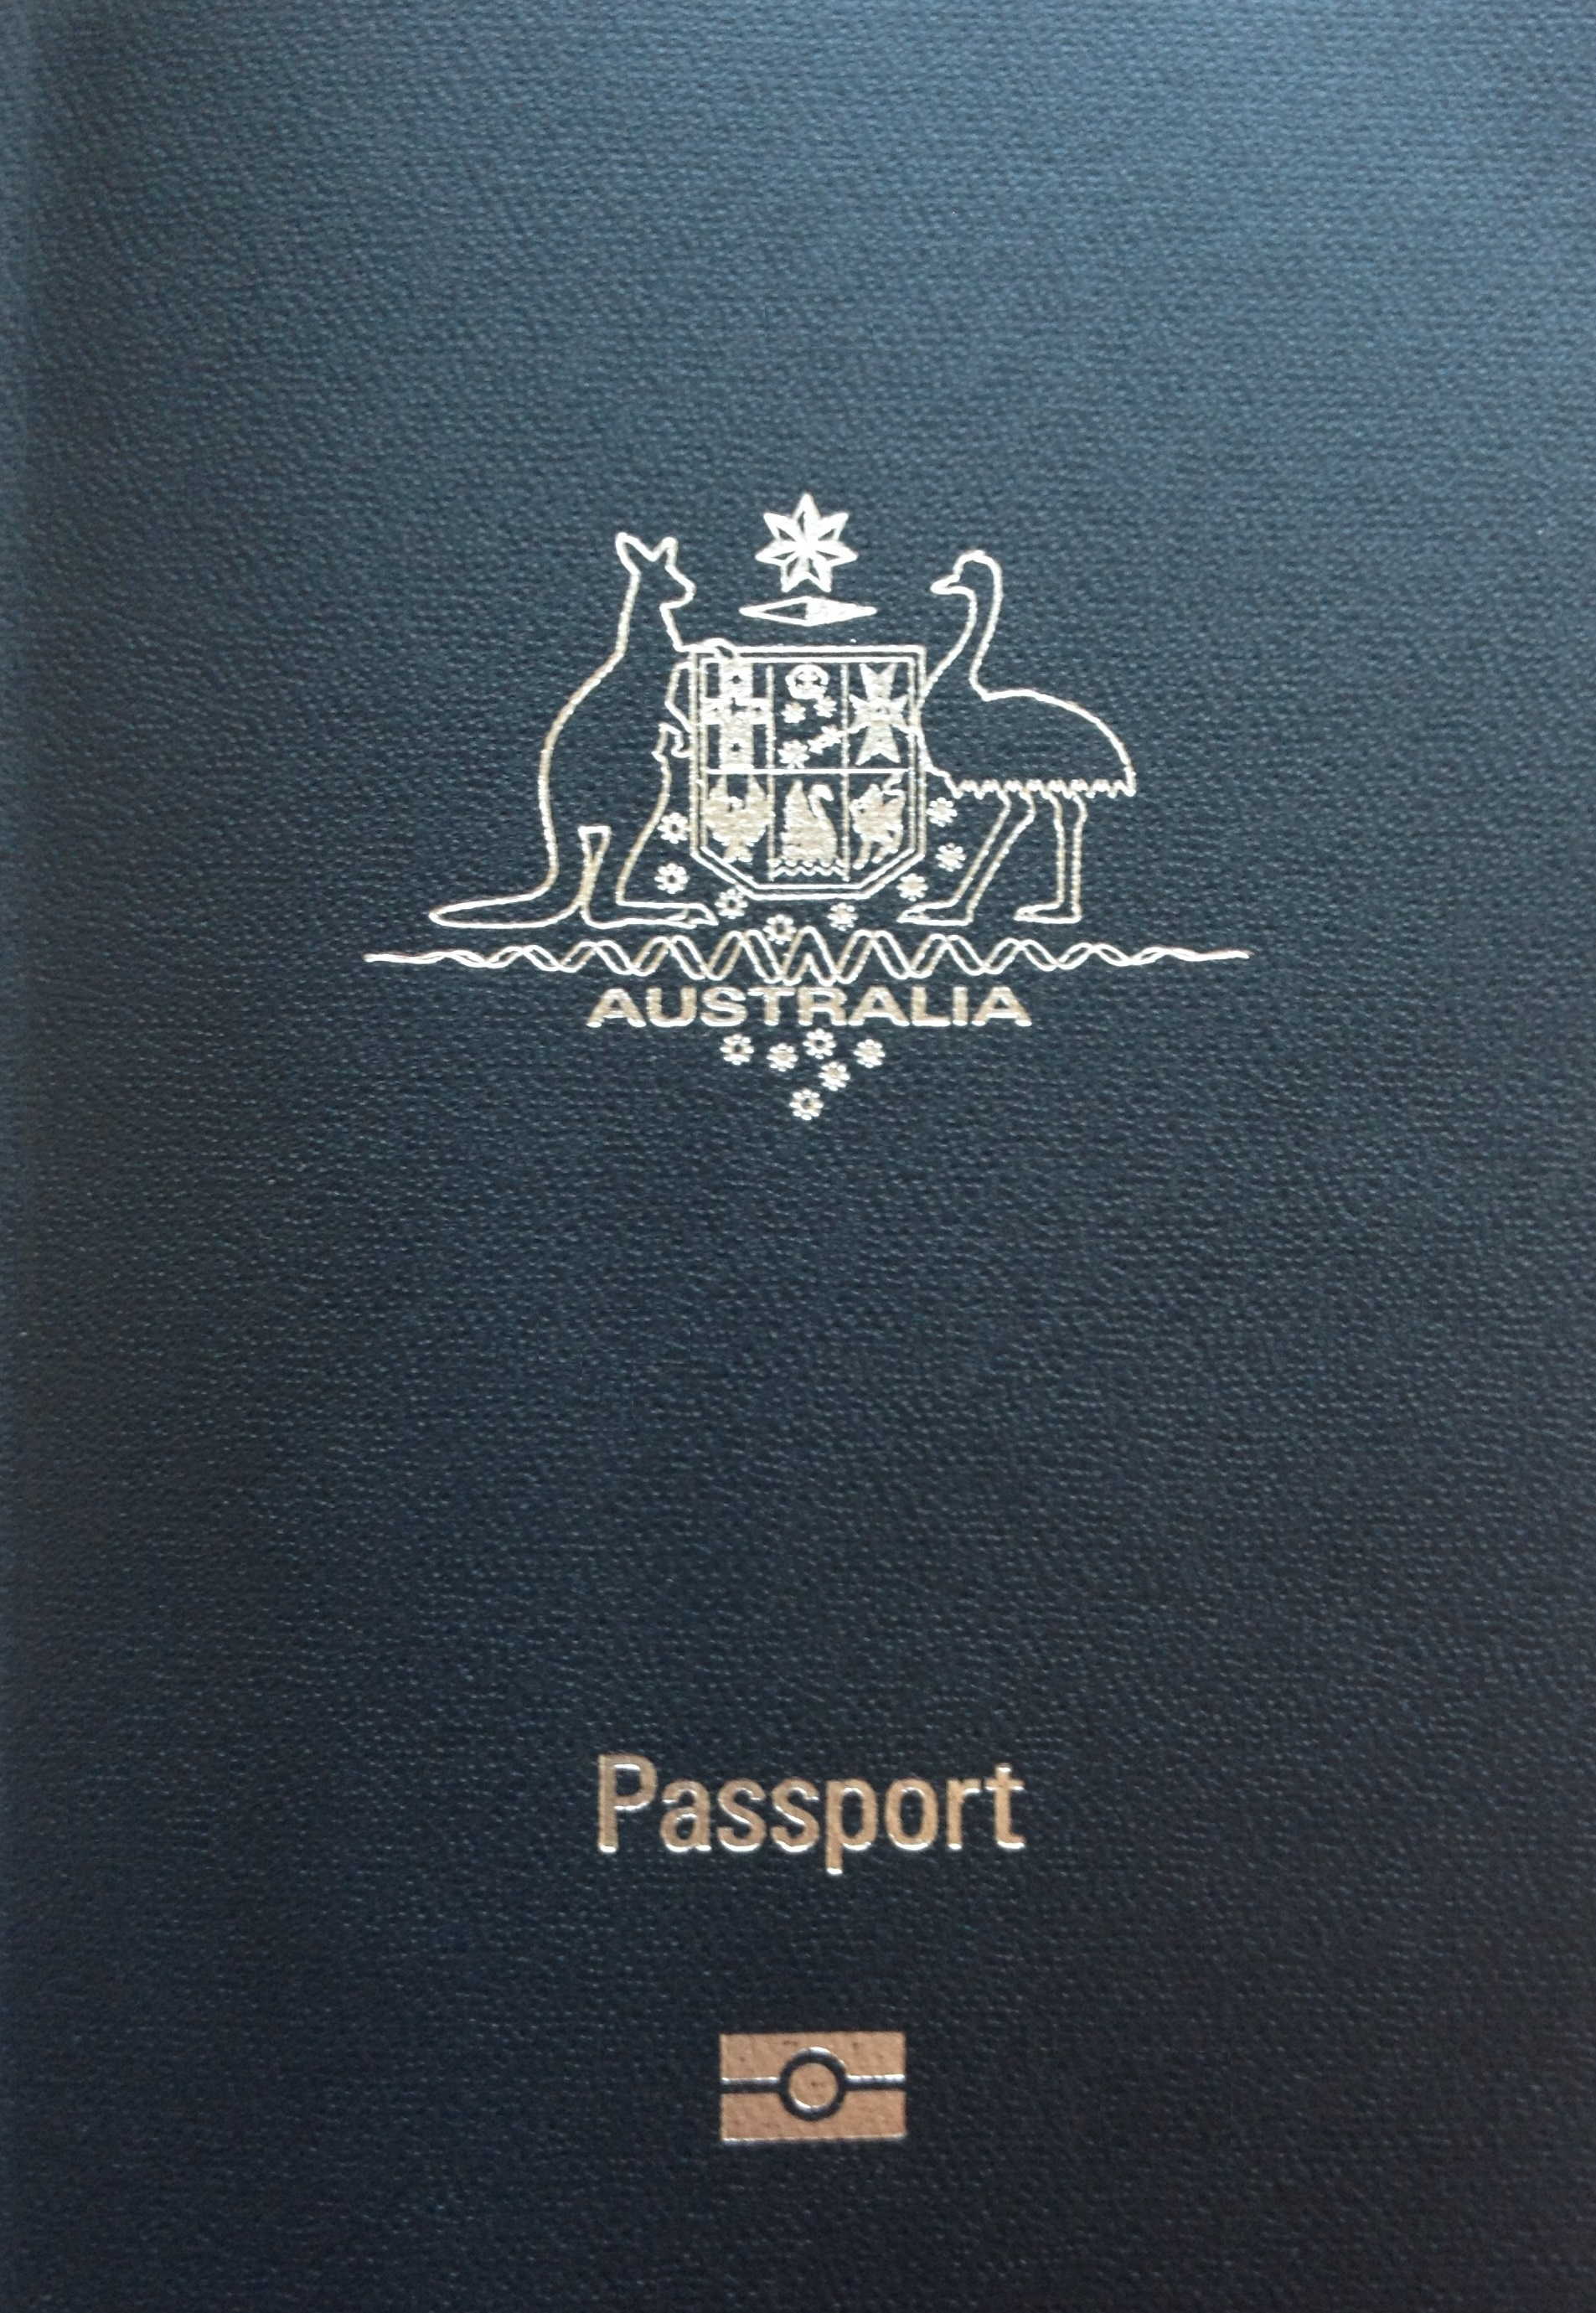 Australian Passport is ranked the 7th Most Powerful Passport in the World - NepaliPage